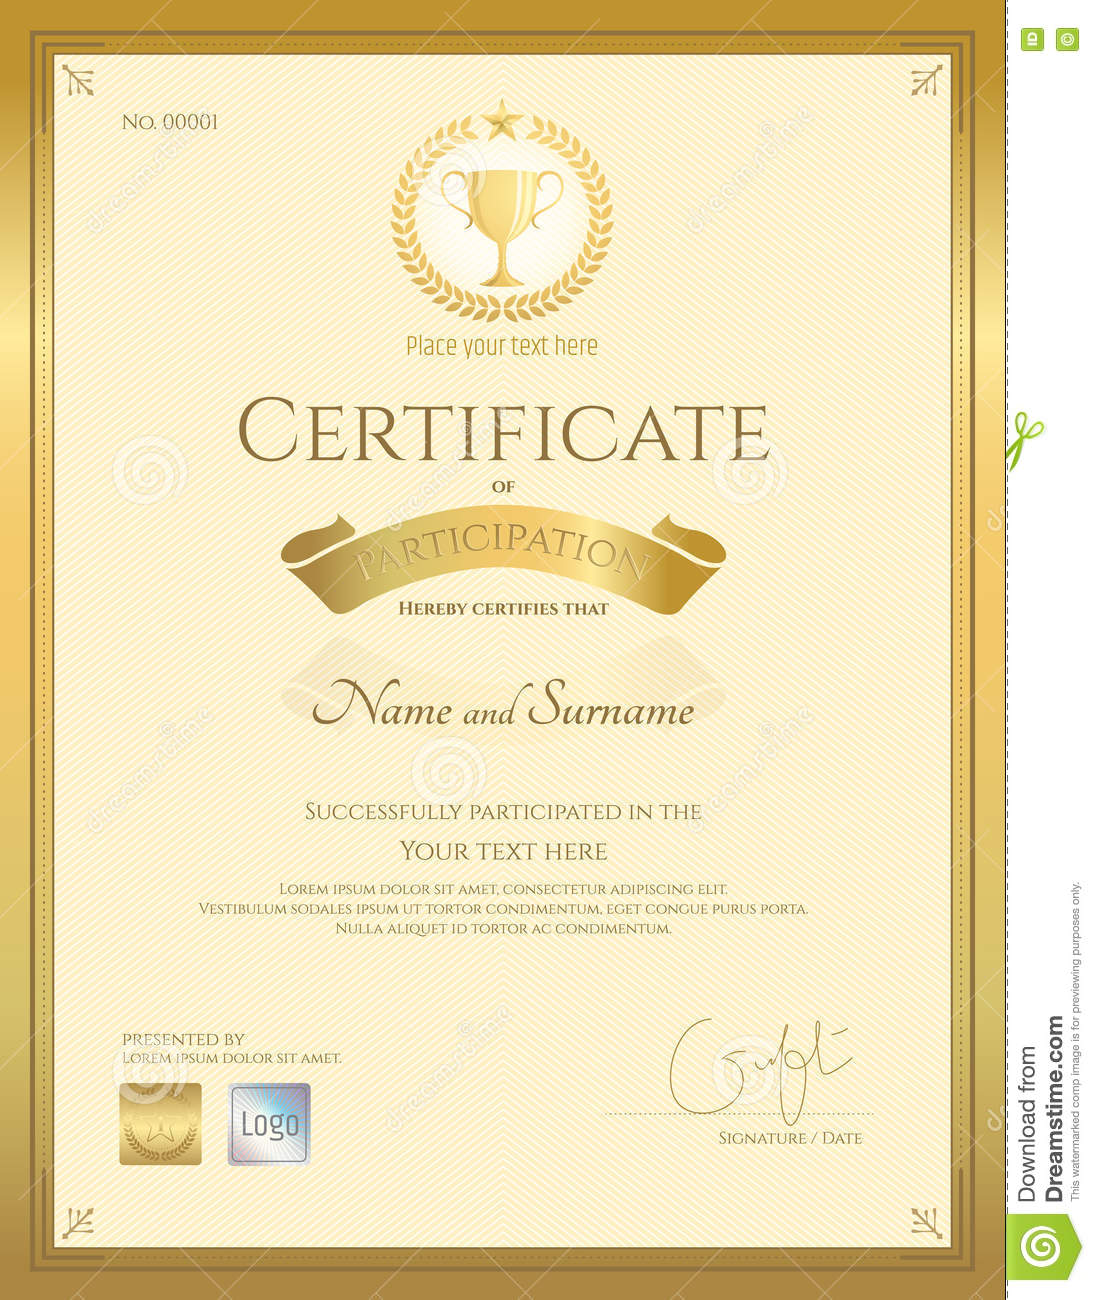 Certificate Of Participation Template In Gold Color  Free Certificate Of Participation Template